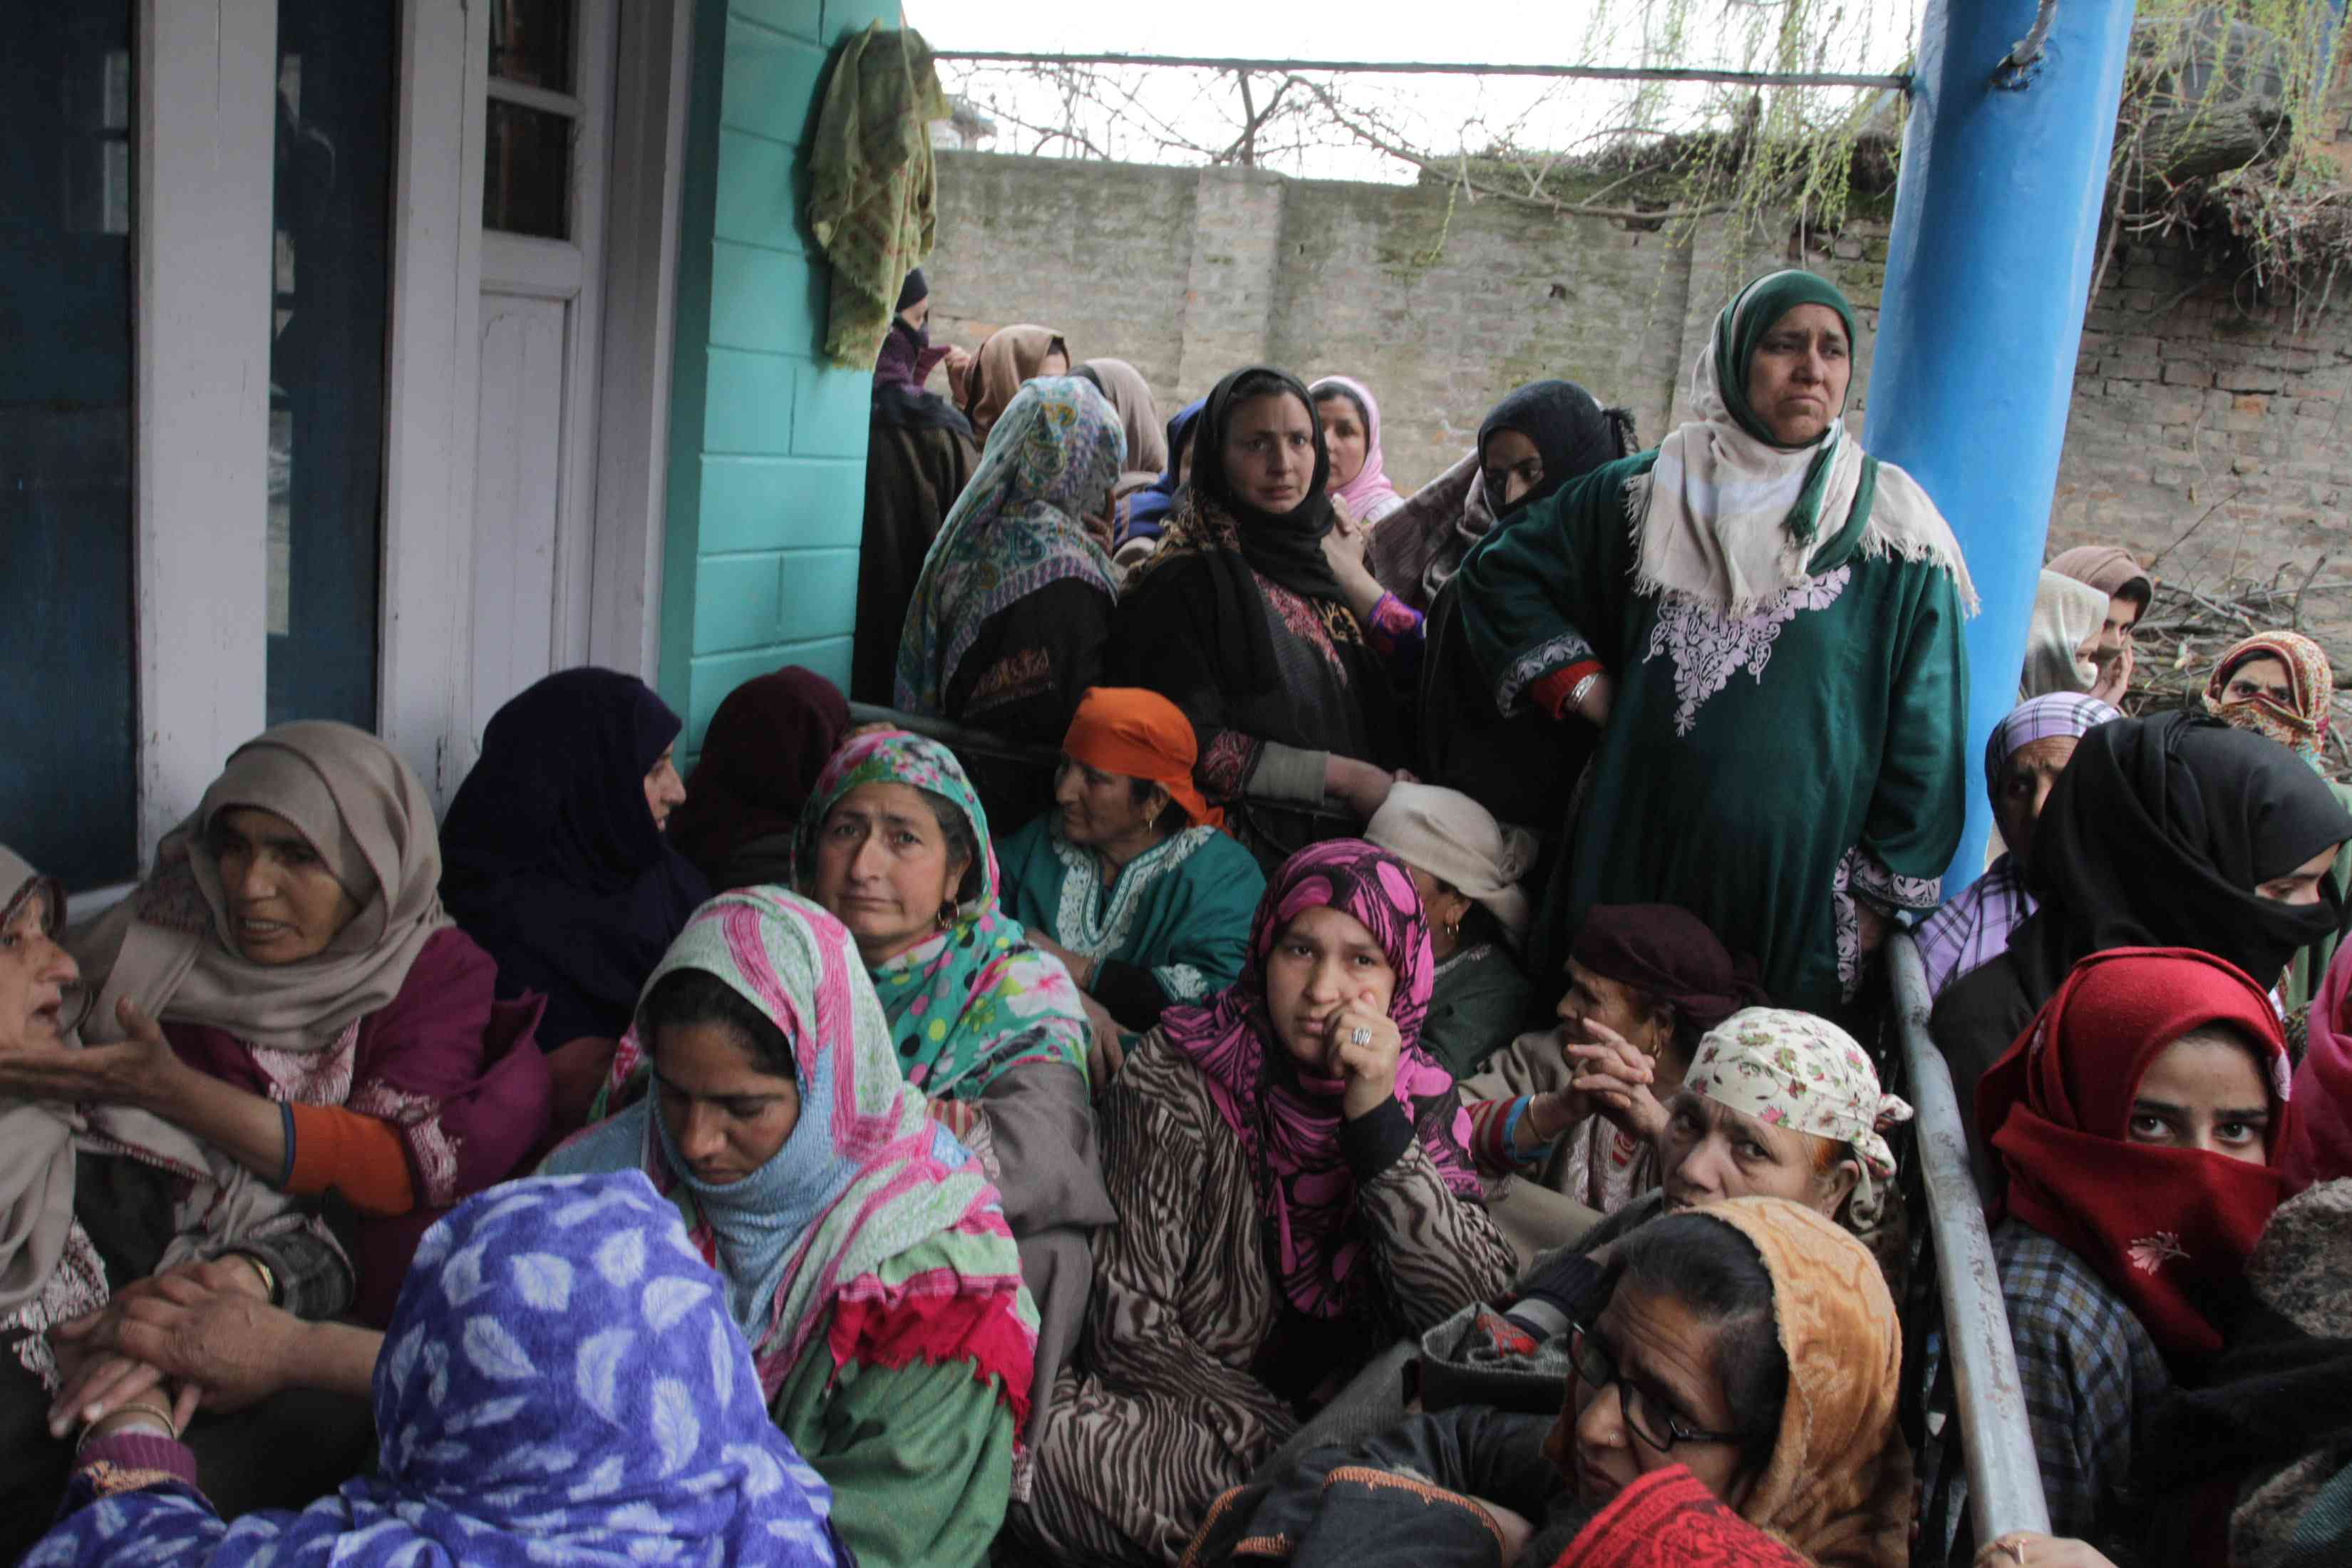 Mourners sit inside the compound of the Pandit family home in Awantipora on Tuesday. (Photo credit: Safwat Zargar).